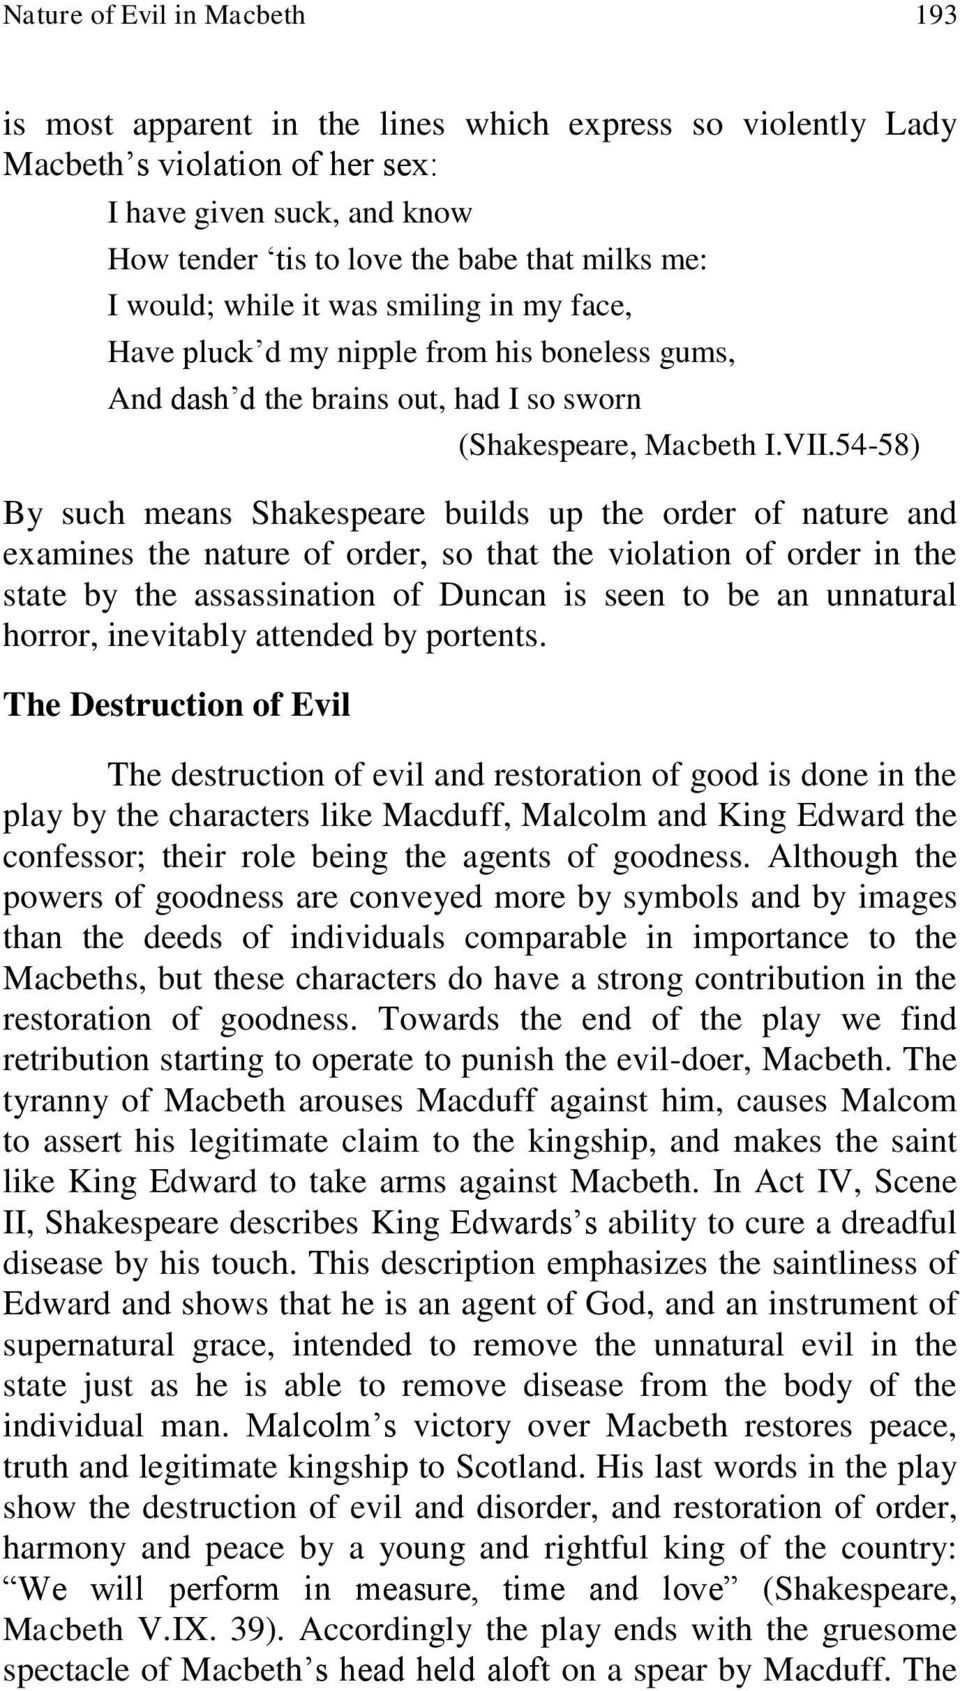 the nature of evil in macbeth